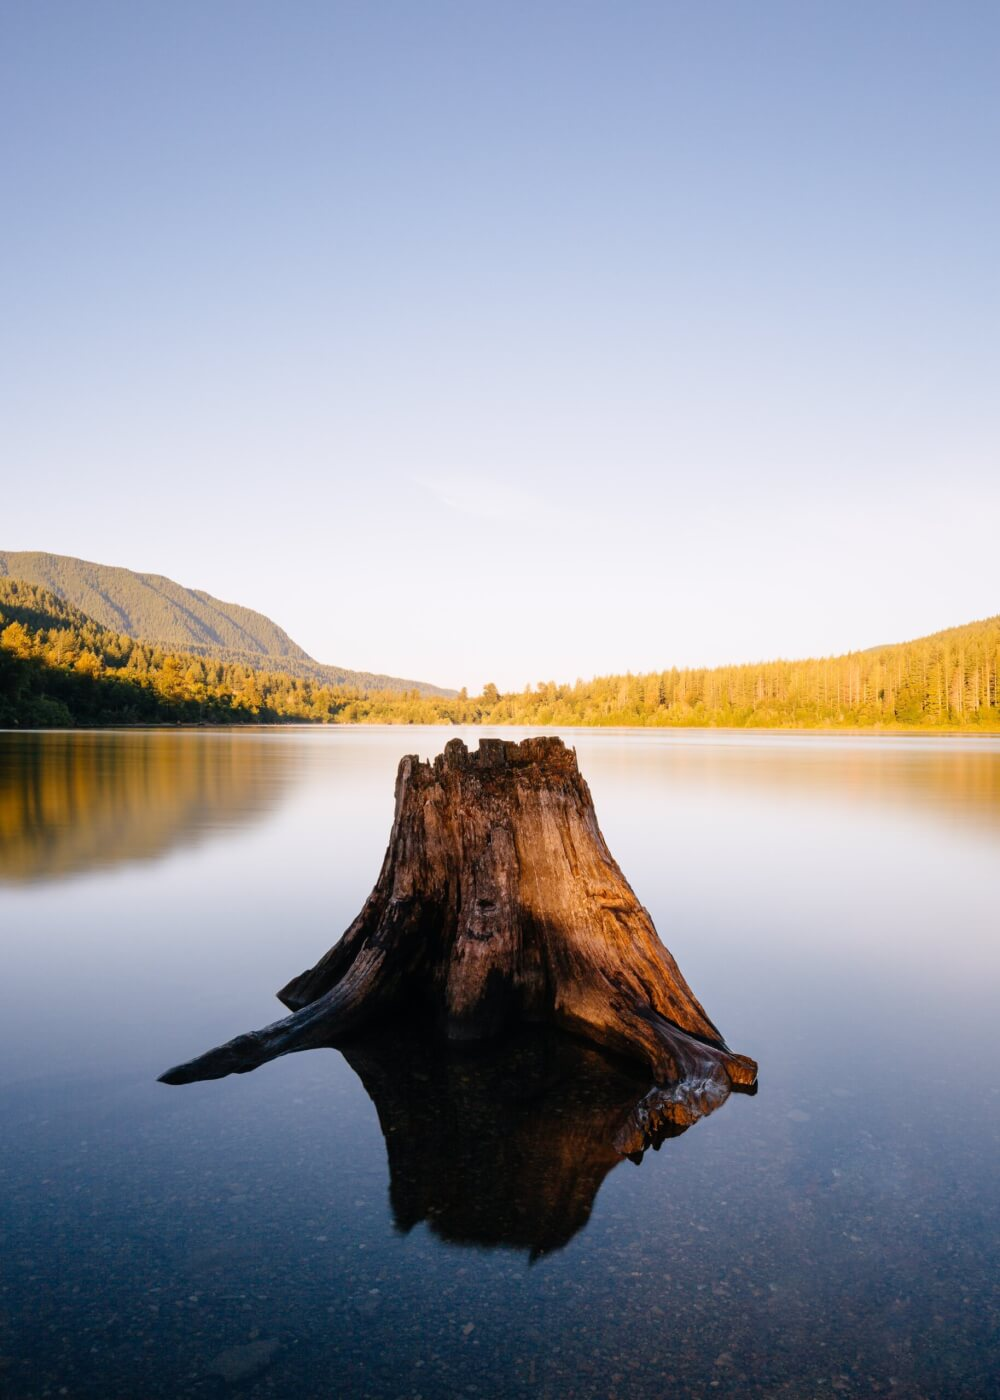 A photo of a tree stump surrounded by water on a crisp morning with forests and vegetated hills in the distance.